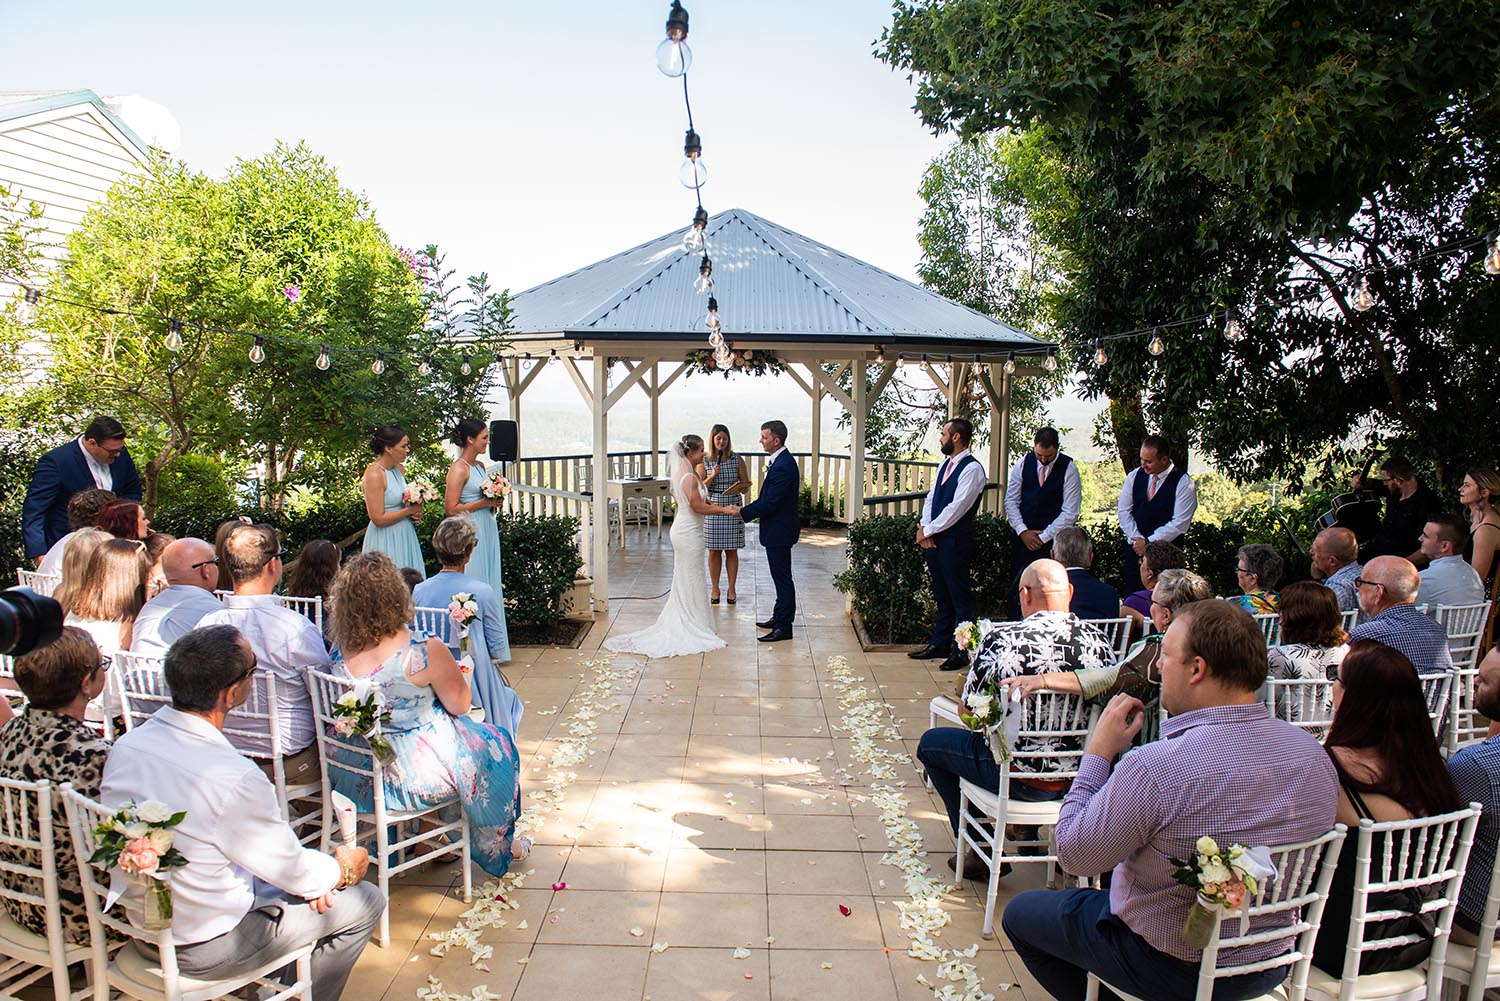 Wedding Photography - Ceremony guest